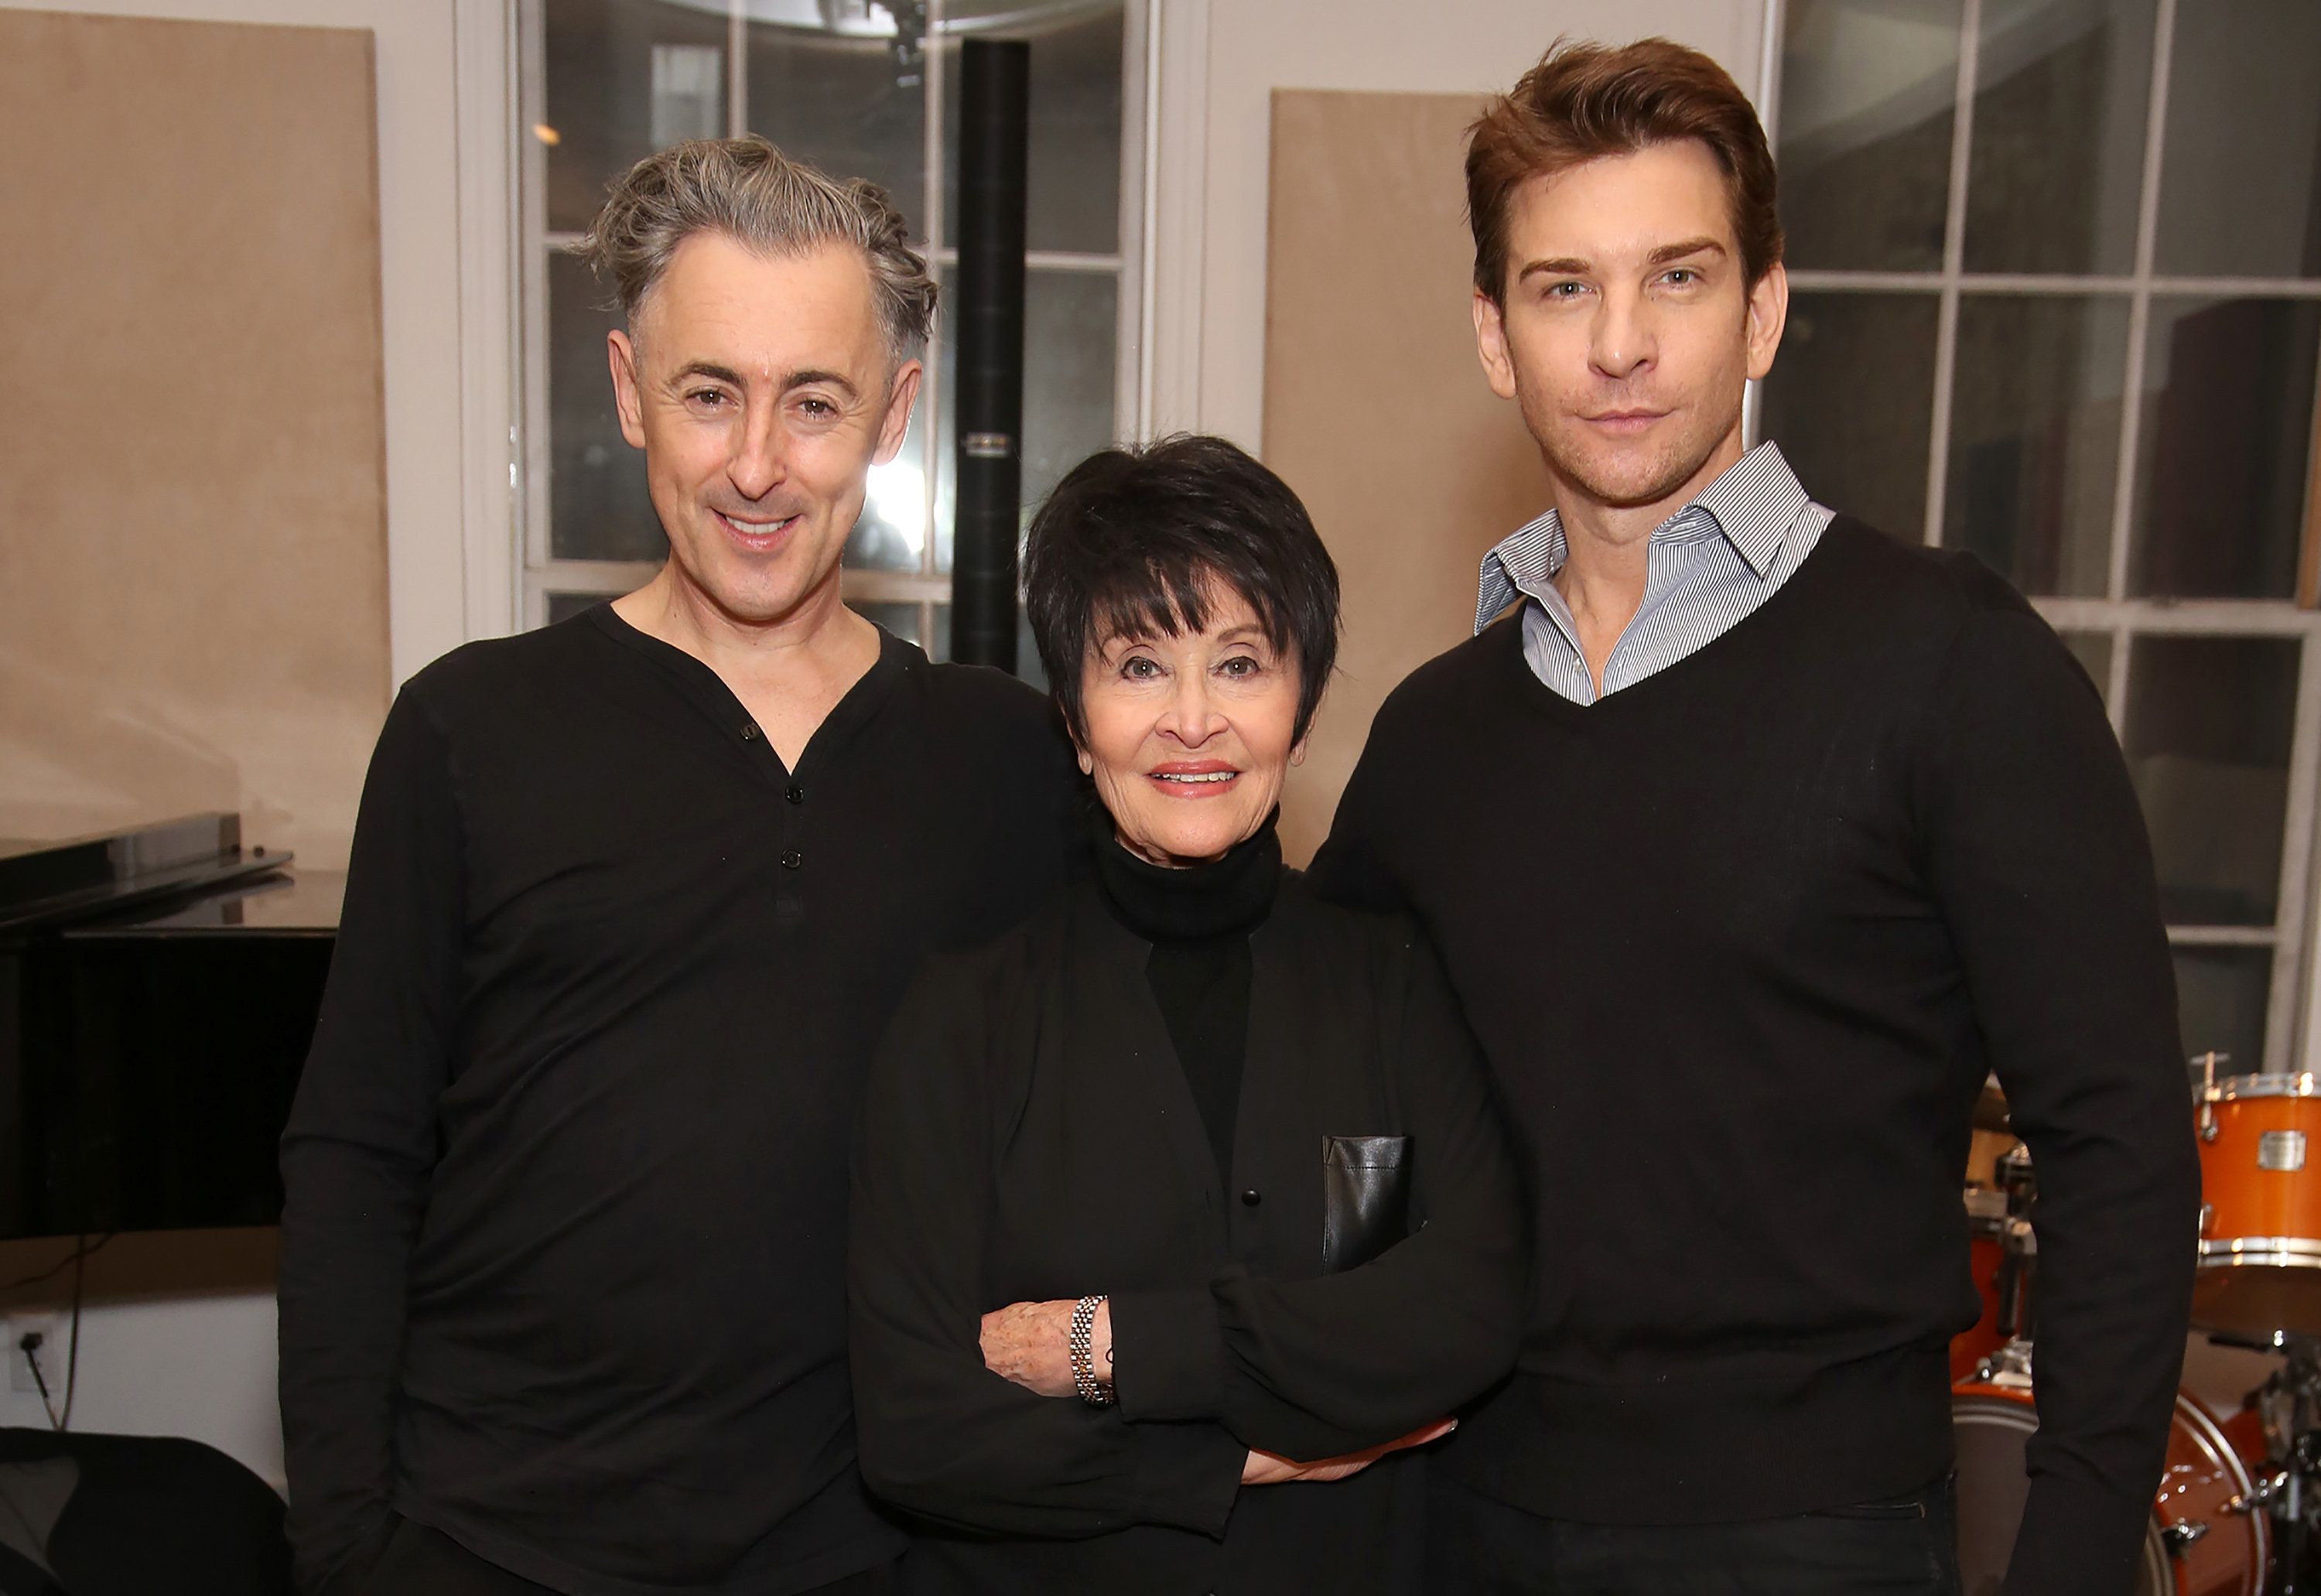 NEW YORK, NY - OCTOBER 27:  Alan Cumming, Chita Rivera and Andy Karl in Rehearsal for 'Chita: Nowadays'  at Michiko Studio on October 27, 2016 in New York City.  (Photo by Walter McBride/WireImage)